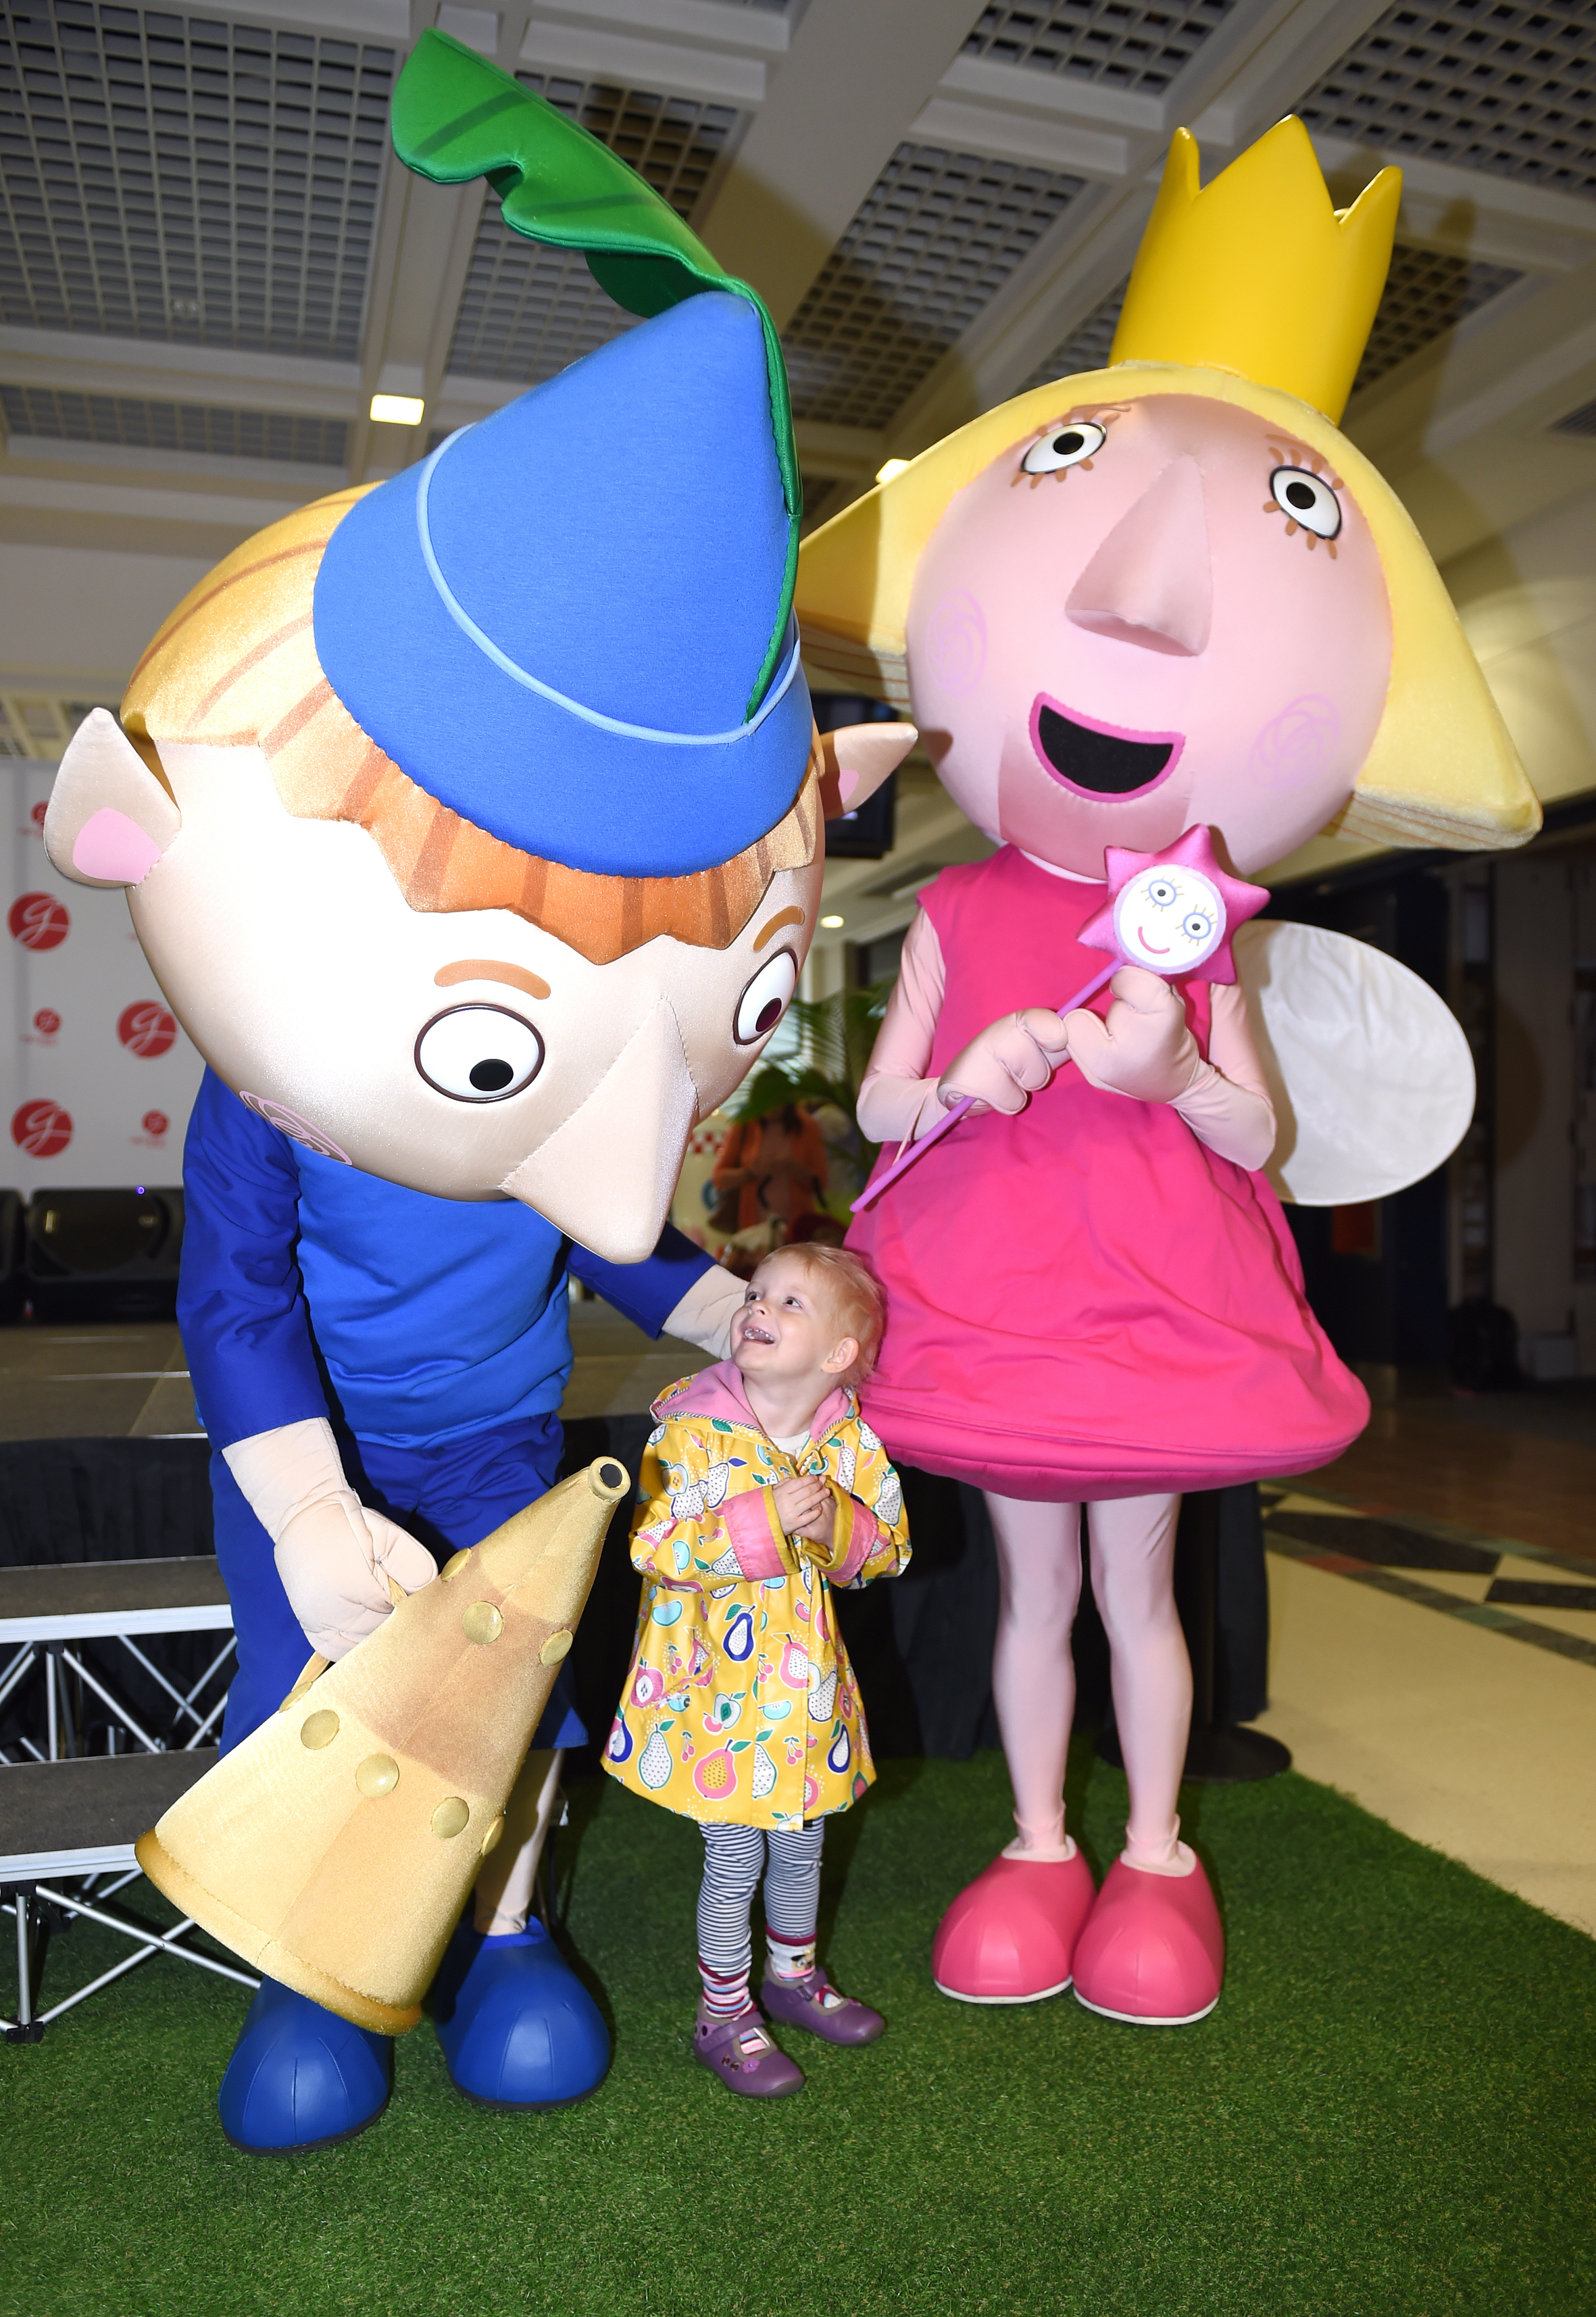 Phoebe McCann aged 3 meets Ben and Holly.